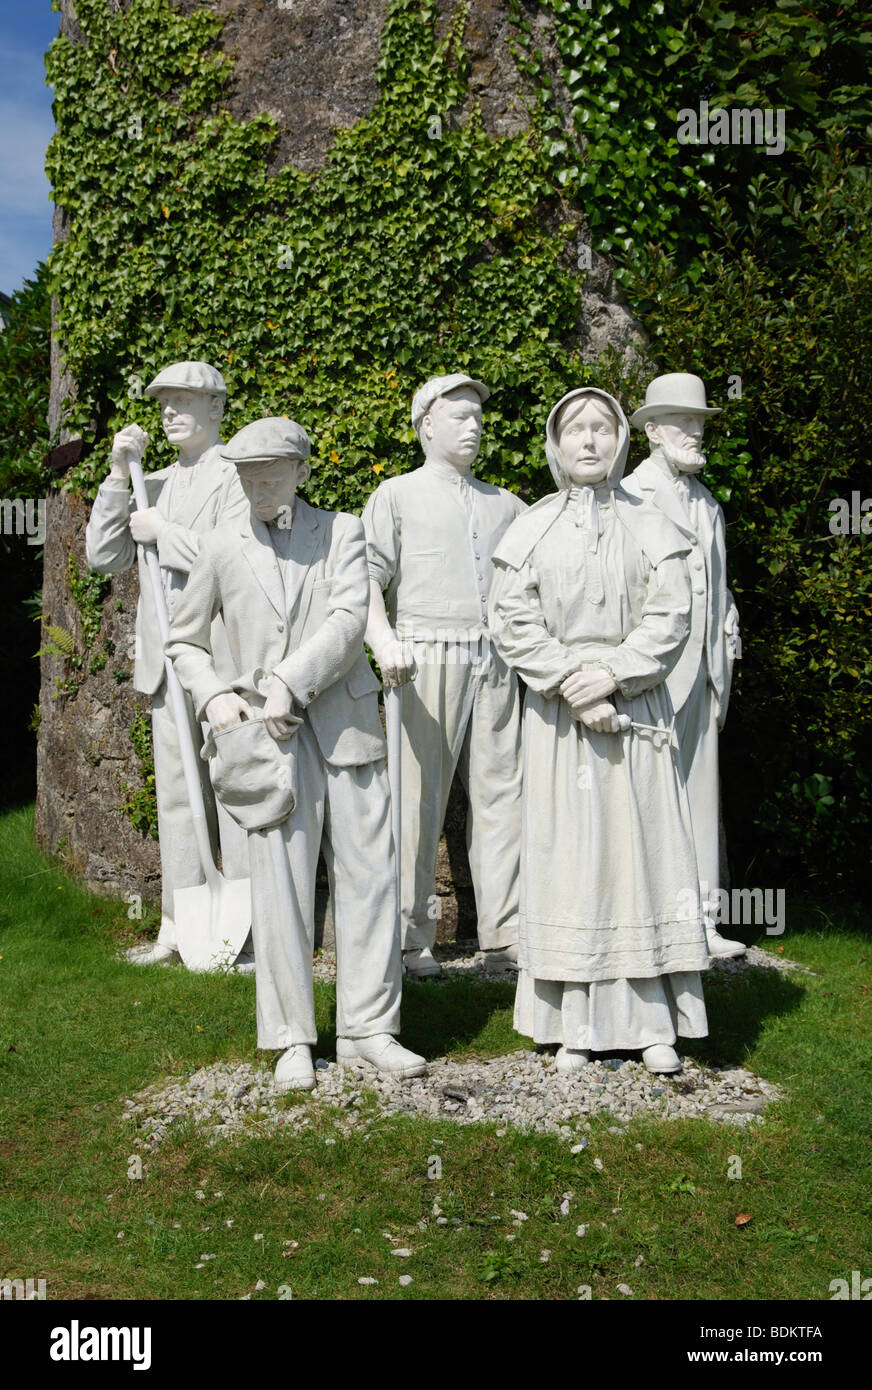 a monument to former workers outside the Engish China Clay Works museum near st.austell in cornwall, uk - Stock Image